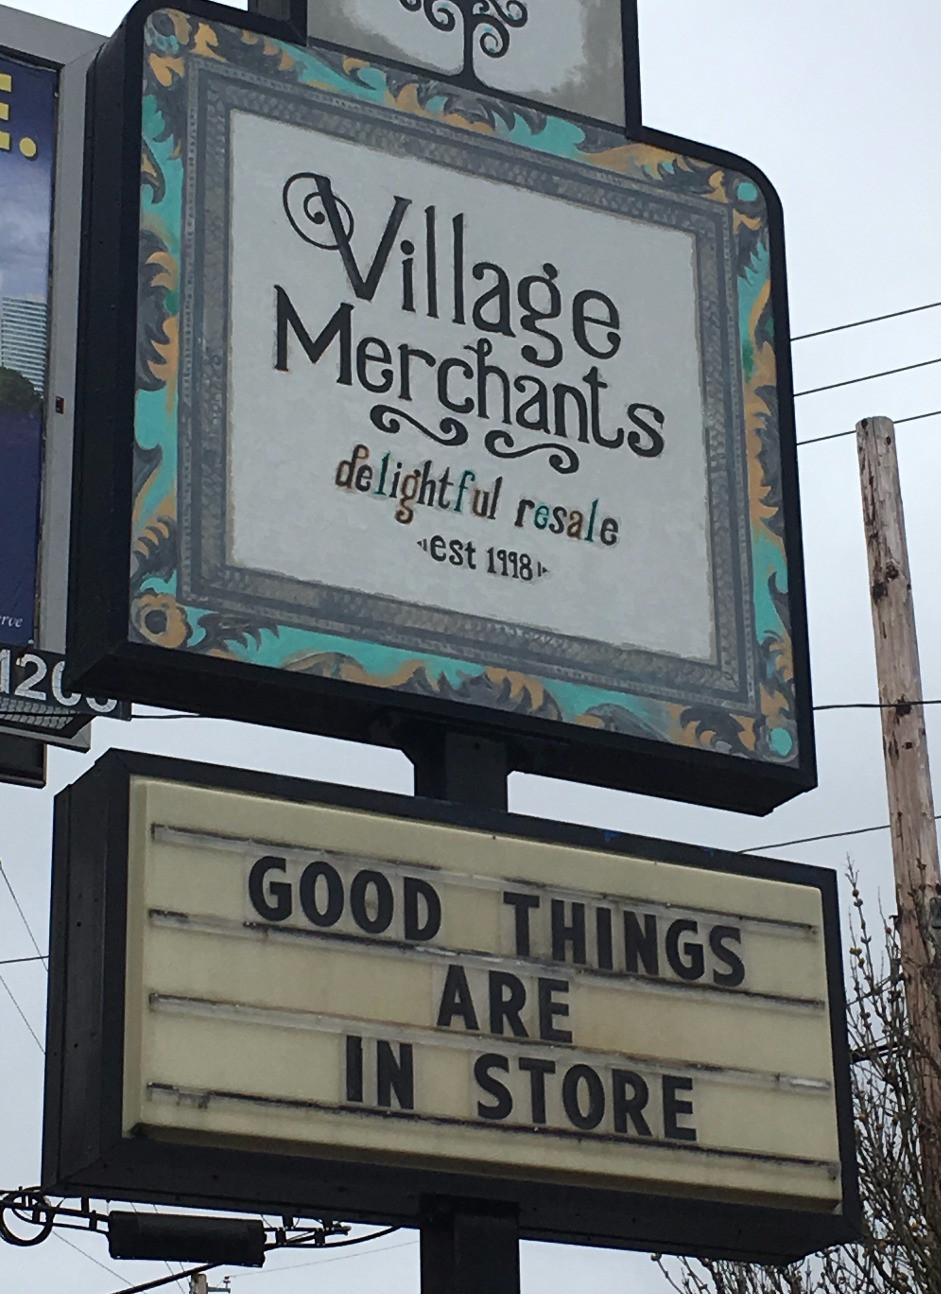 Village Merchant: Delightful Resale